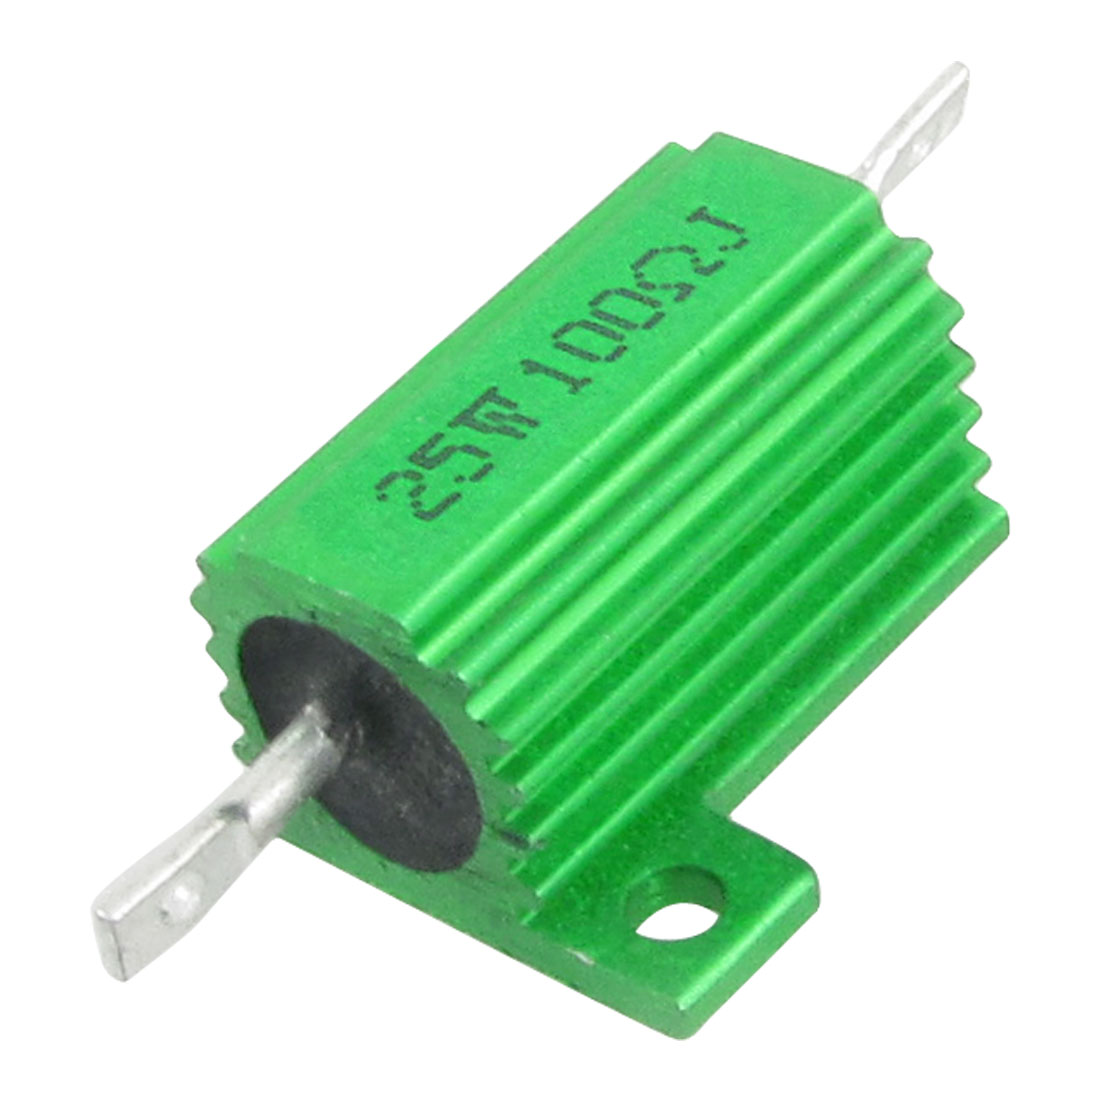 Green 25W Watt 100 Ohm 5% Aluminum Housed Wire Wound Resistor